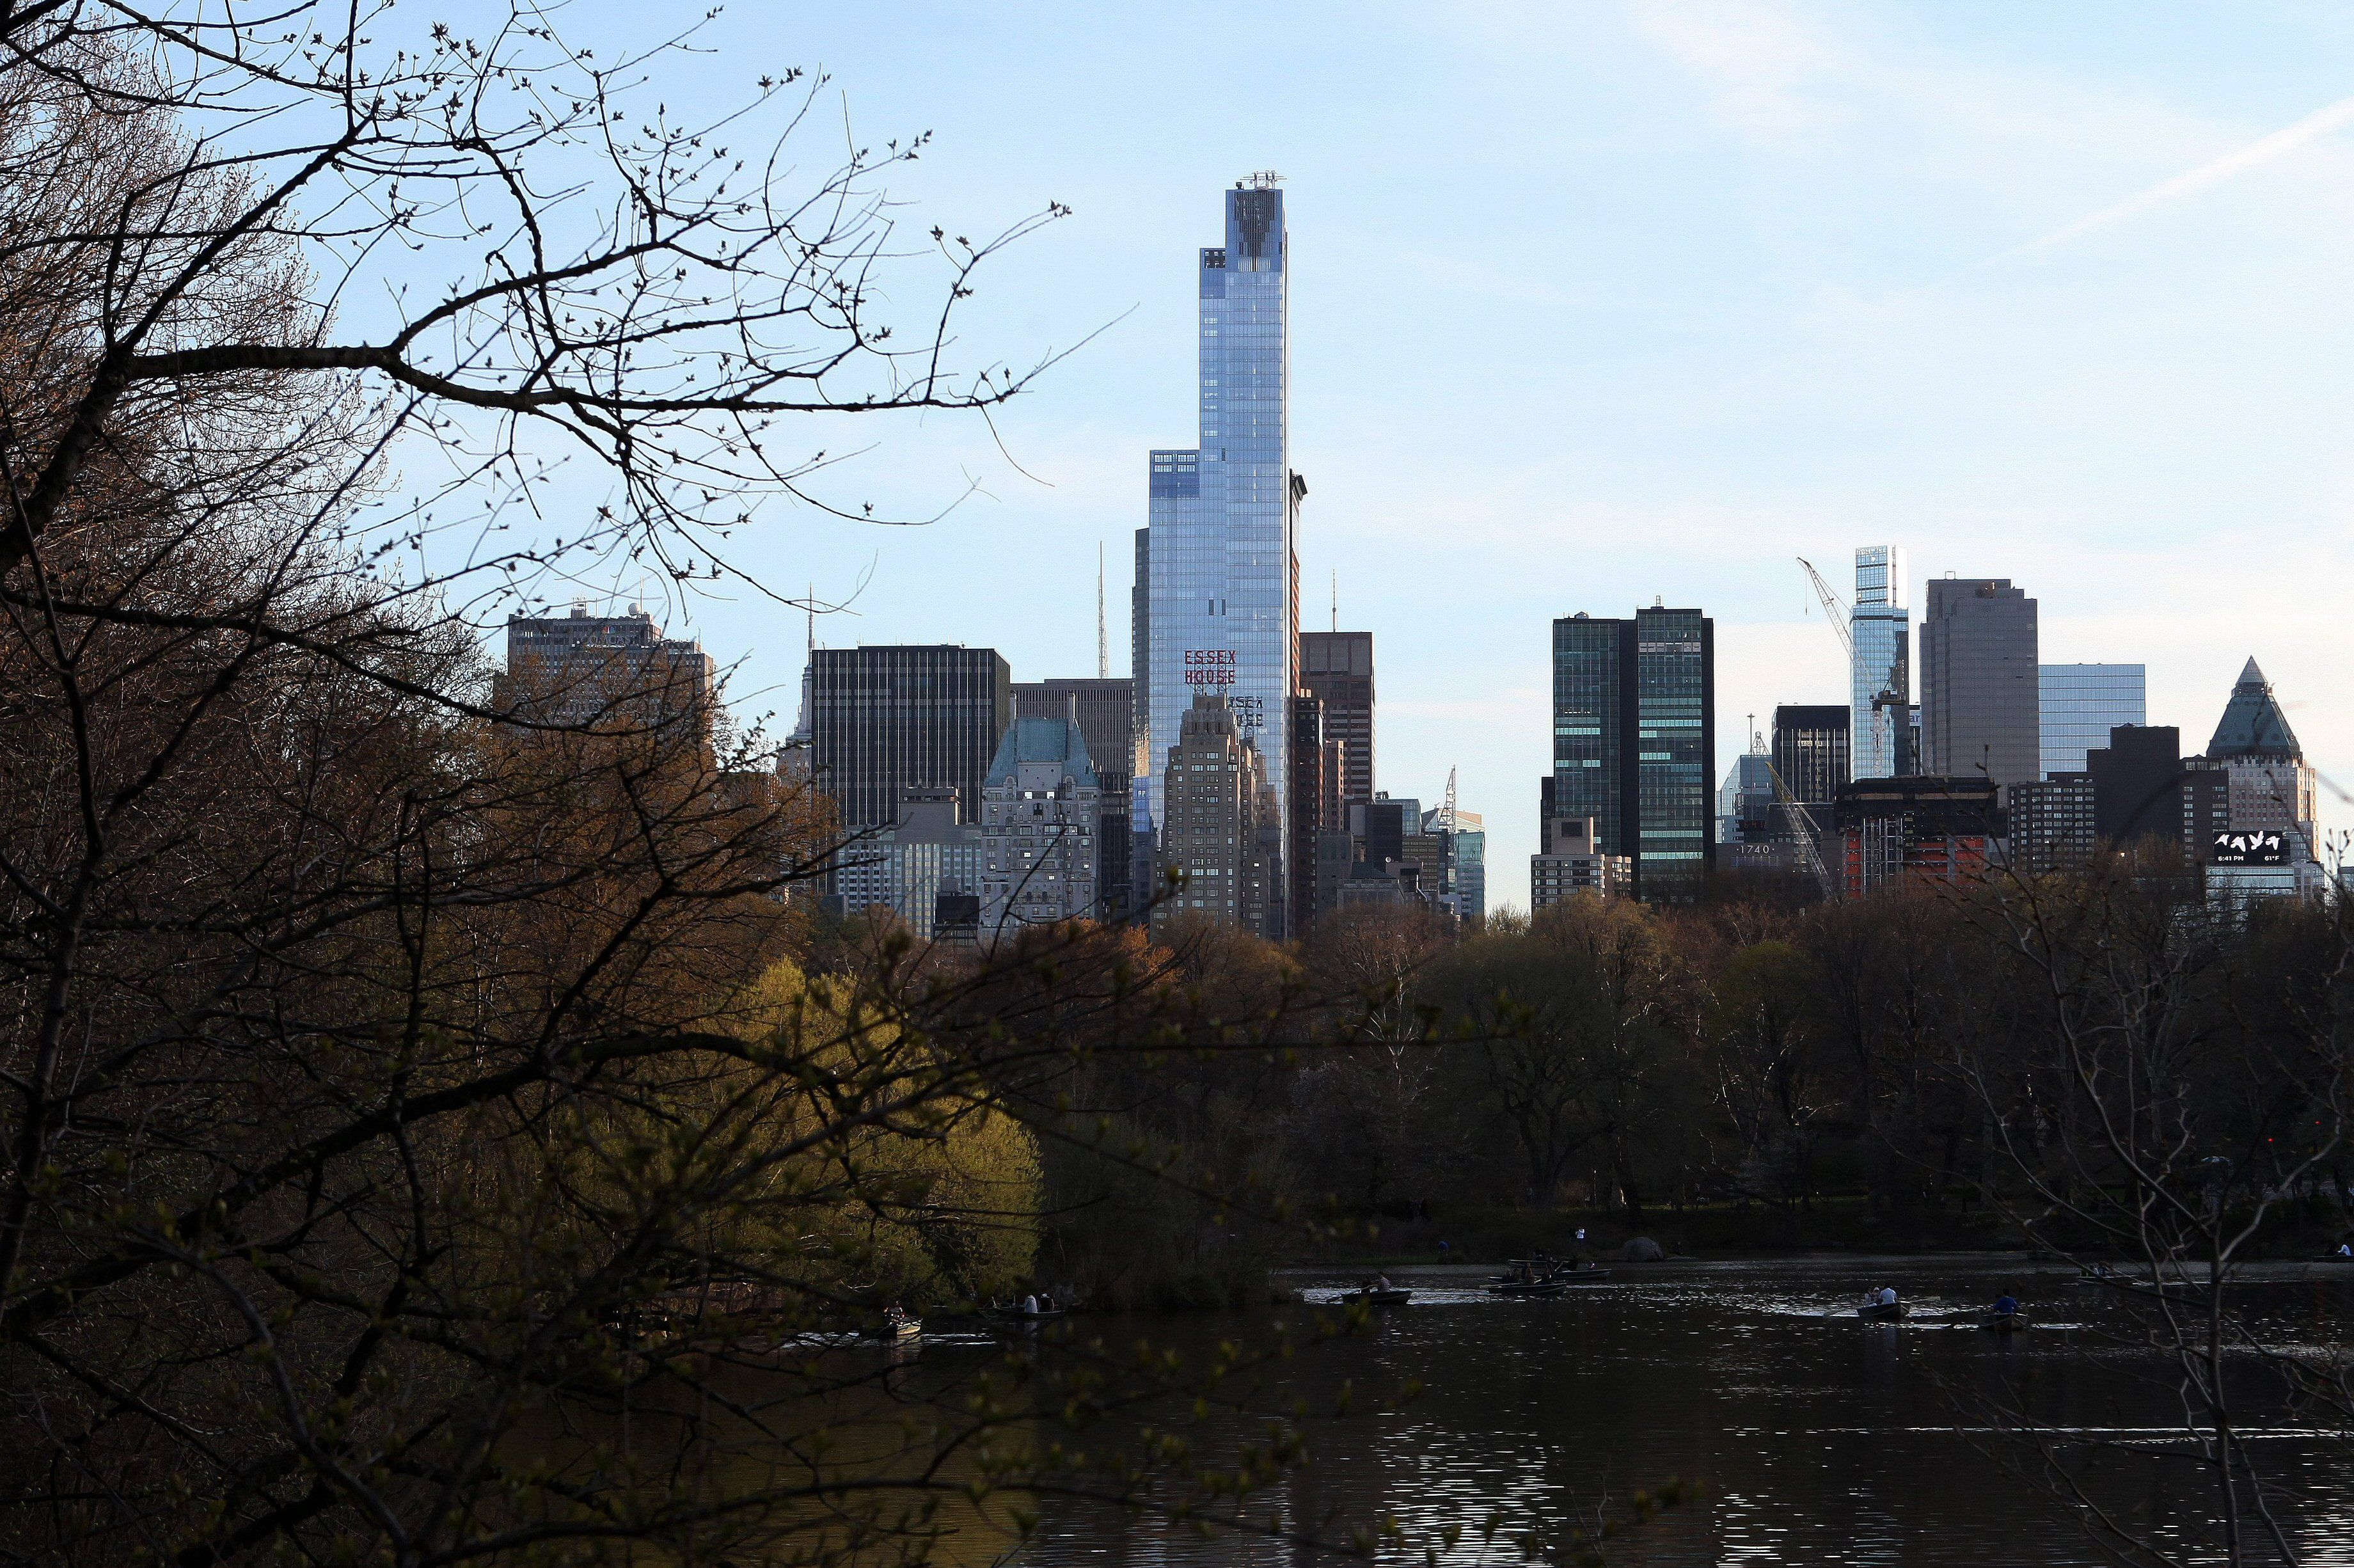 One57 Overlooking Central Park, Skyscraper Designed by Portzamparc